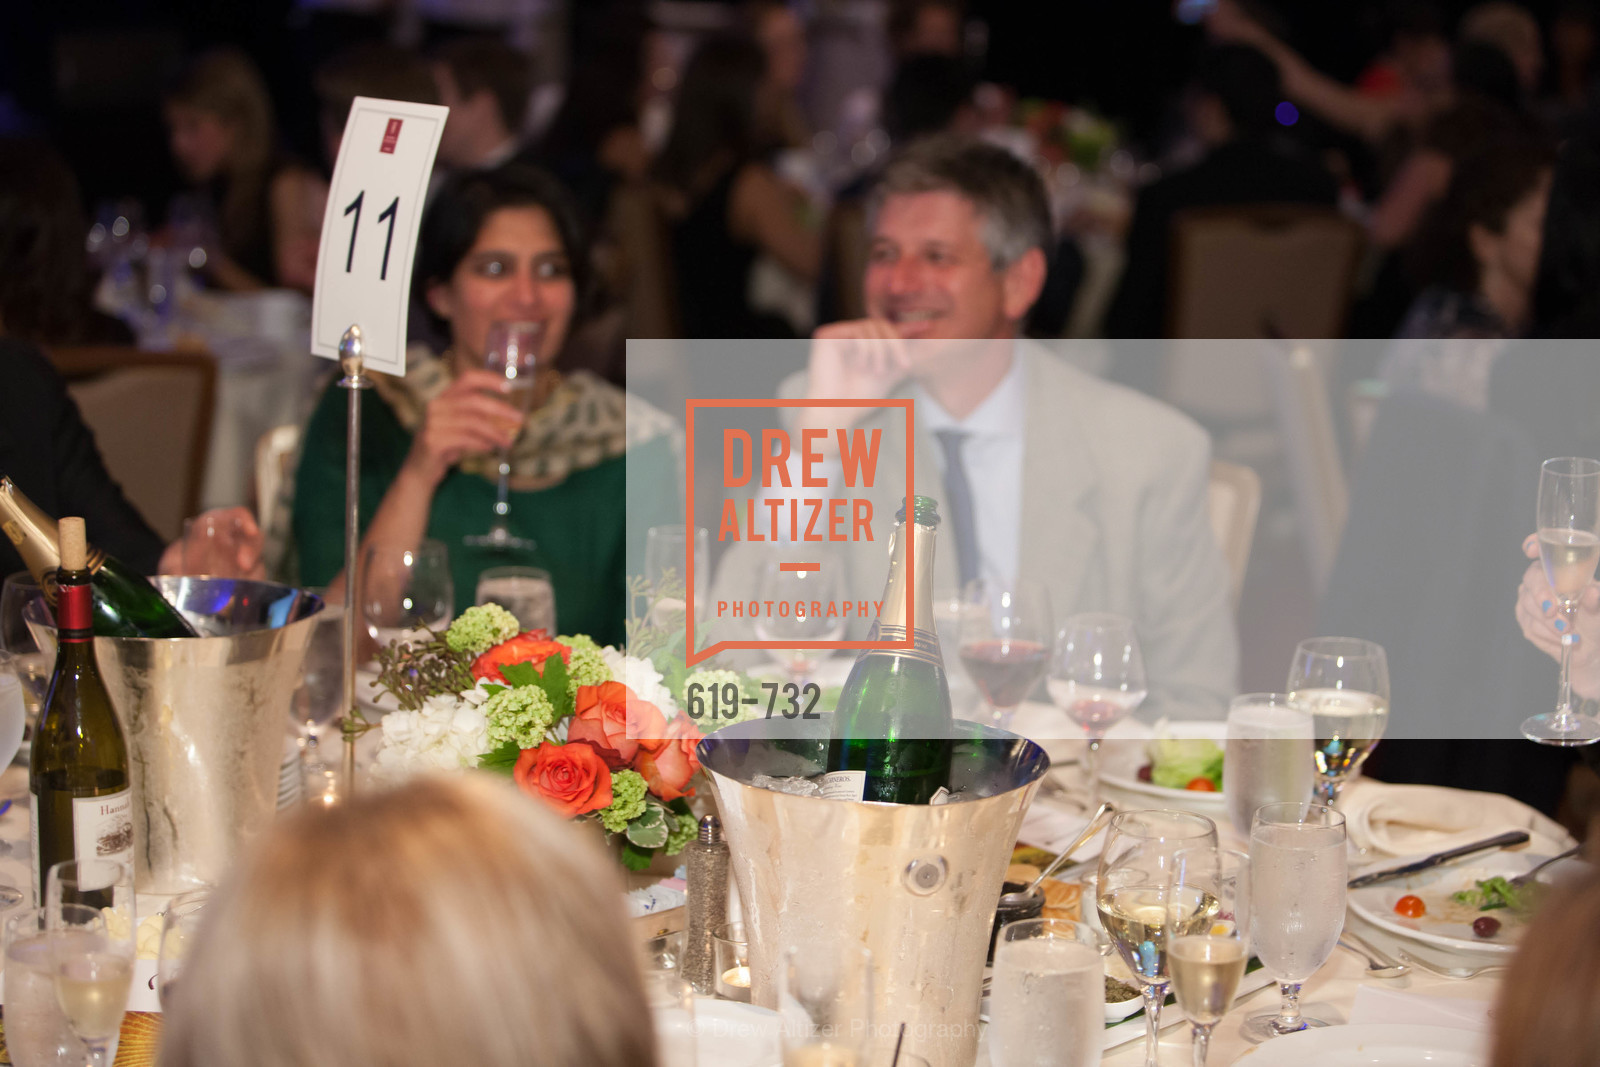 Atmosphere, CROHN'S AND COLITIS FOUNDATION'S 18th Annual California Wine Classic, May 16th, 2015, Photo,Drew Altizer, Drew Altizer Photography, full-service agency, private events, San Francisco photographer, photographer california